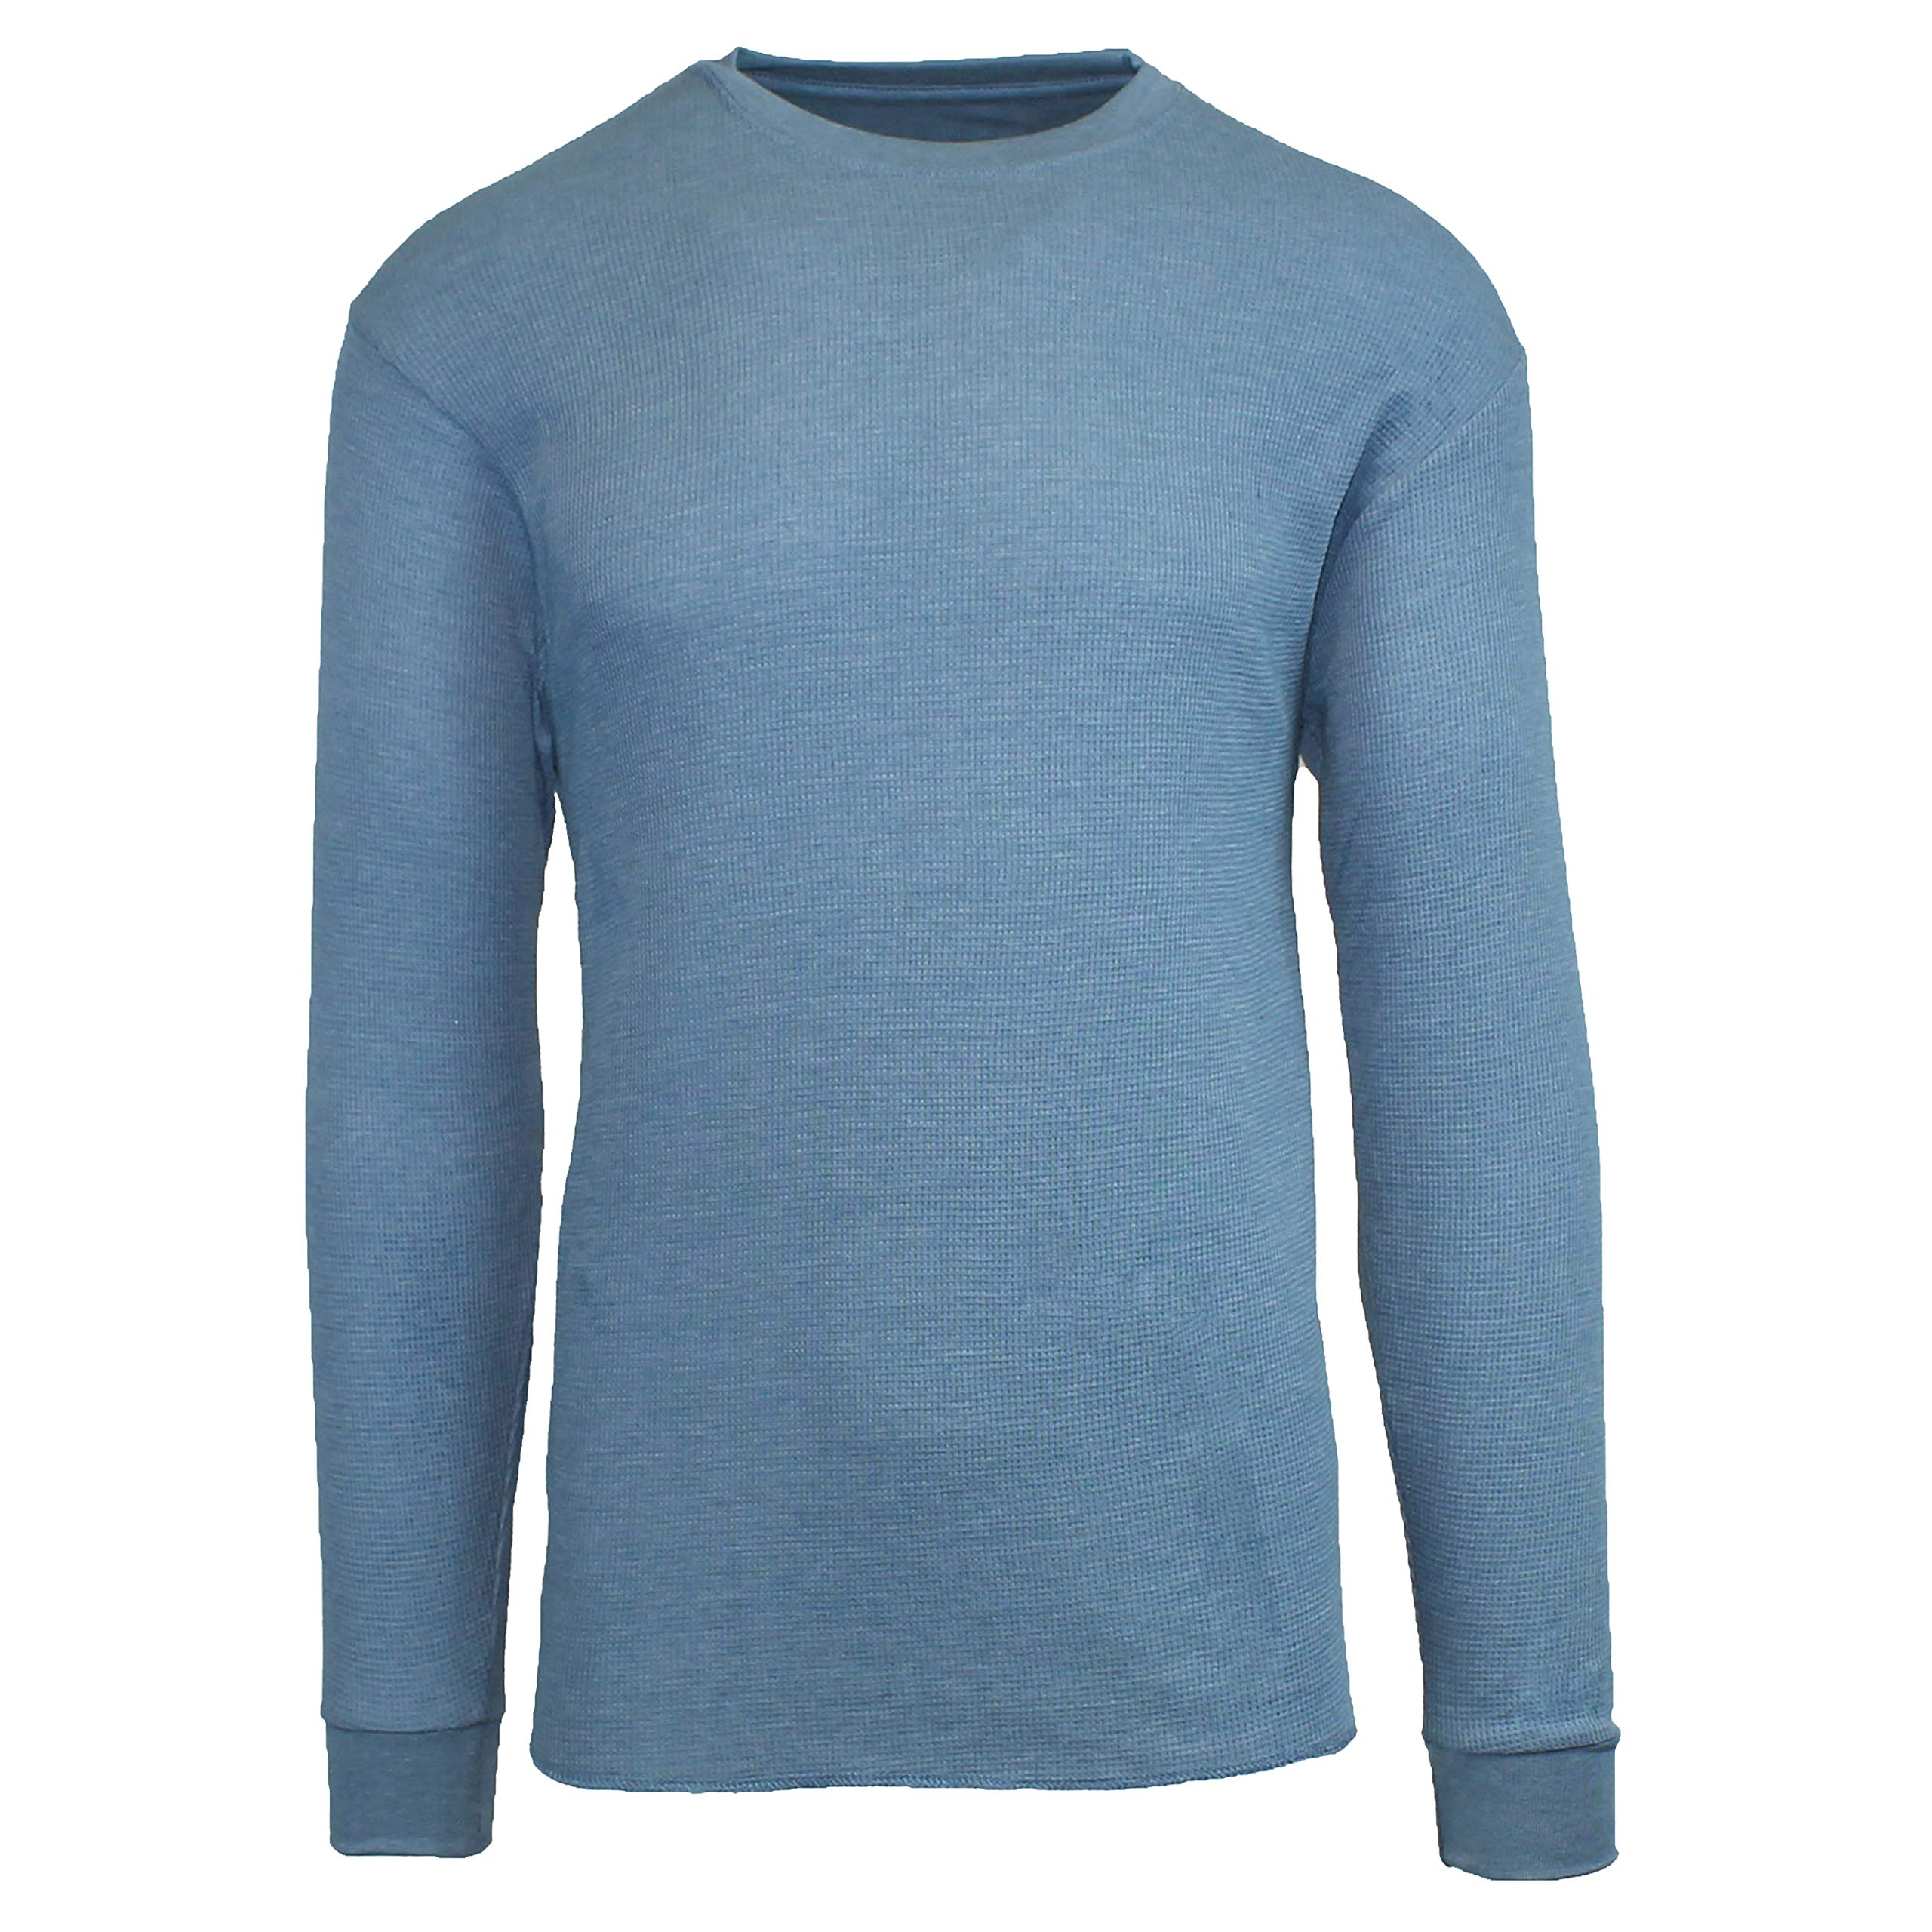 Galaxy by Harvic Mens Crew Neck Thermal Shirt (Multiple Sizes/Colors) by Galaxy by Harvic